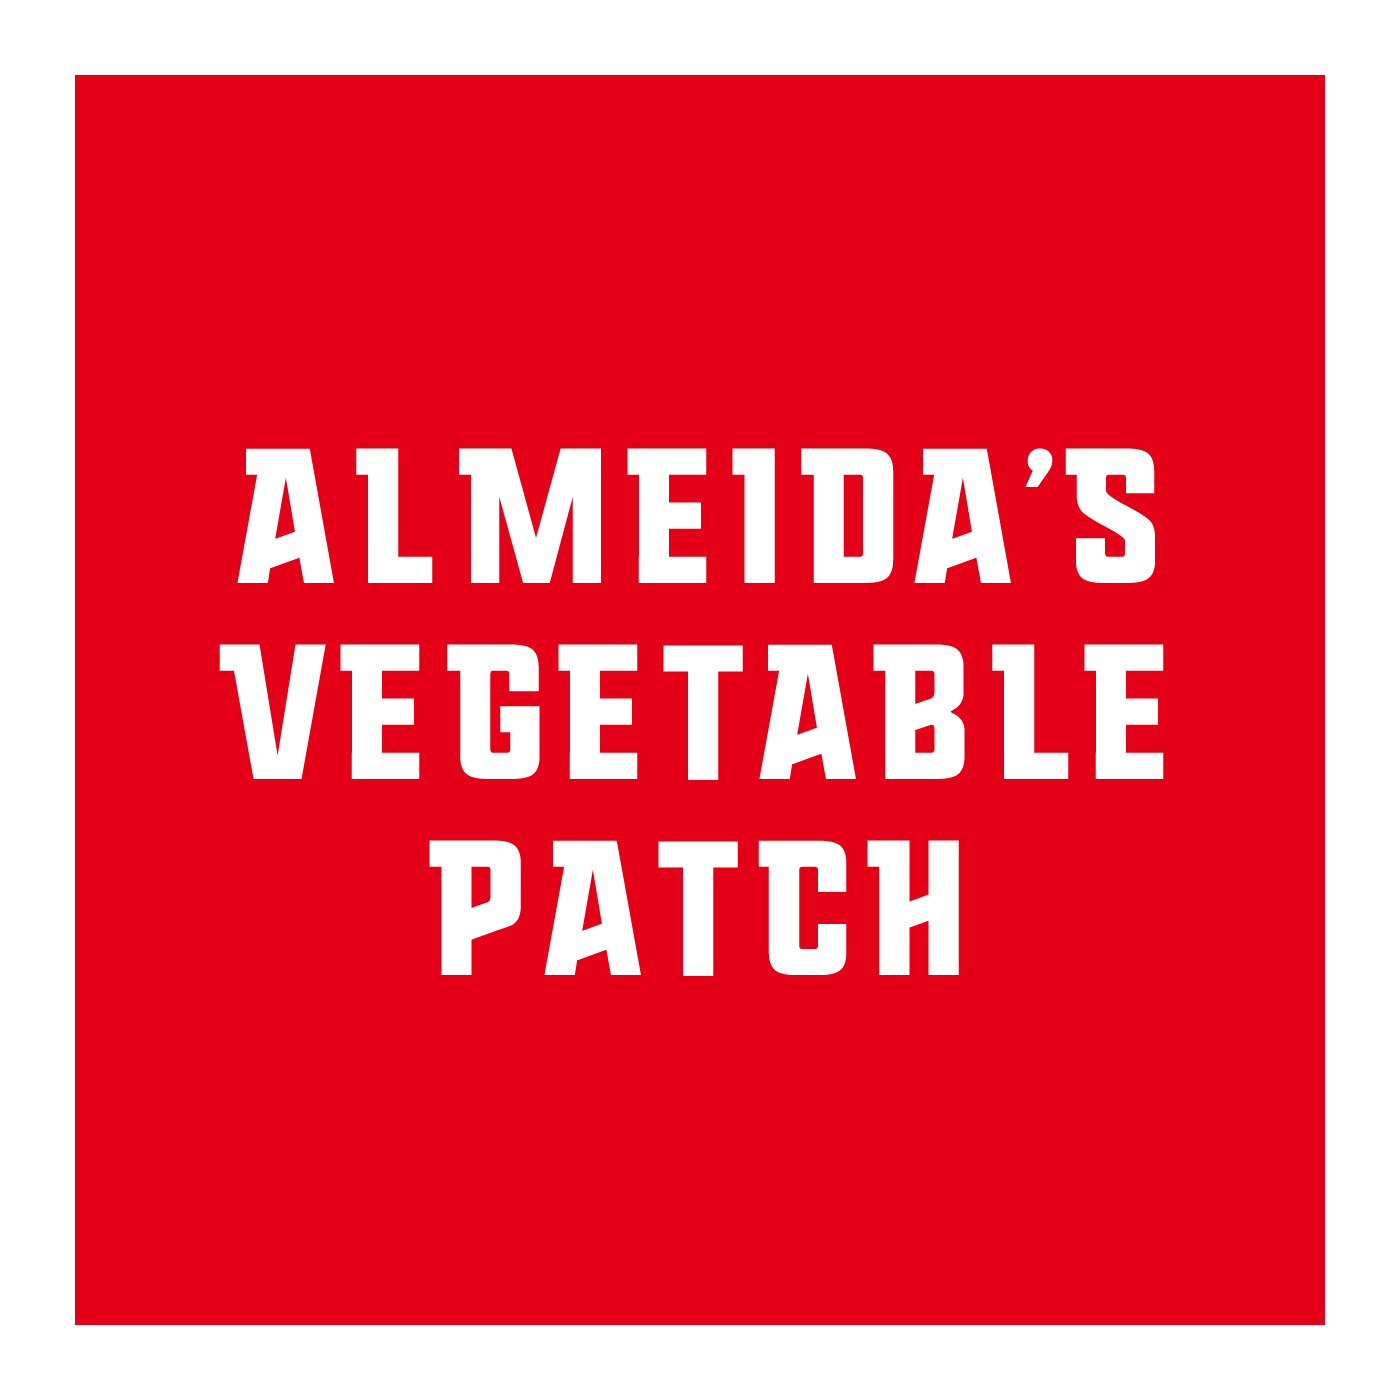 Almeida's Vegetable Patch